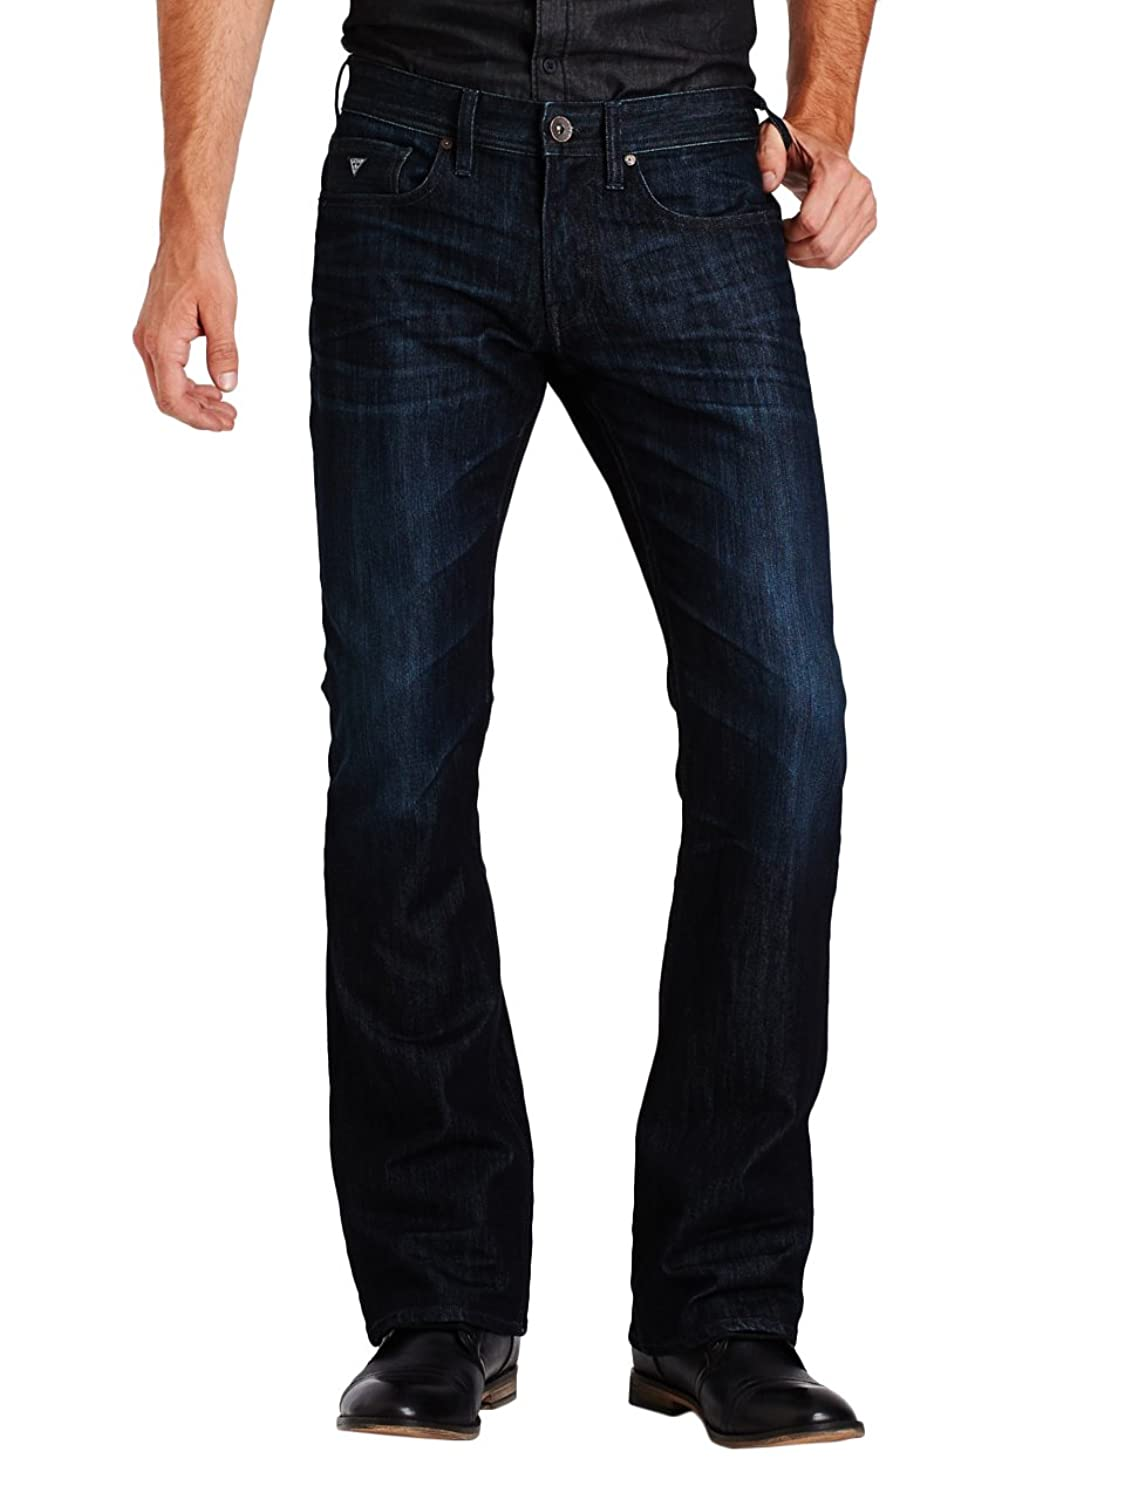 GUESS Men's Regular Bootcut Jeans in Riverfront Wash guess shoes jeans pumps